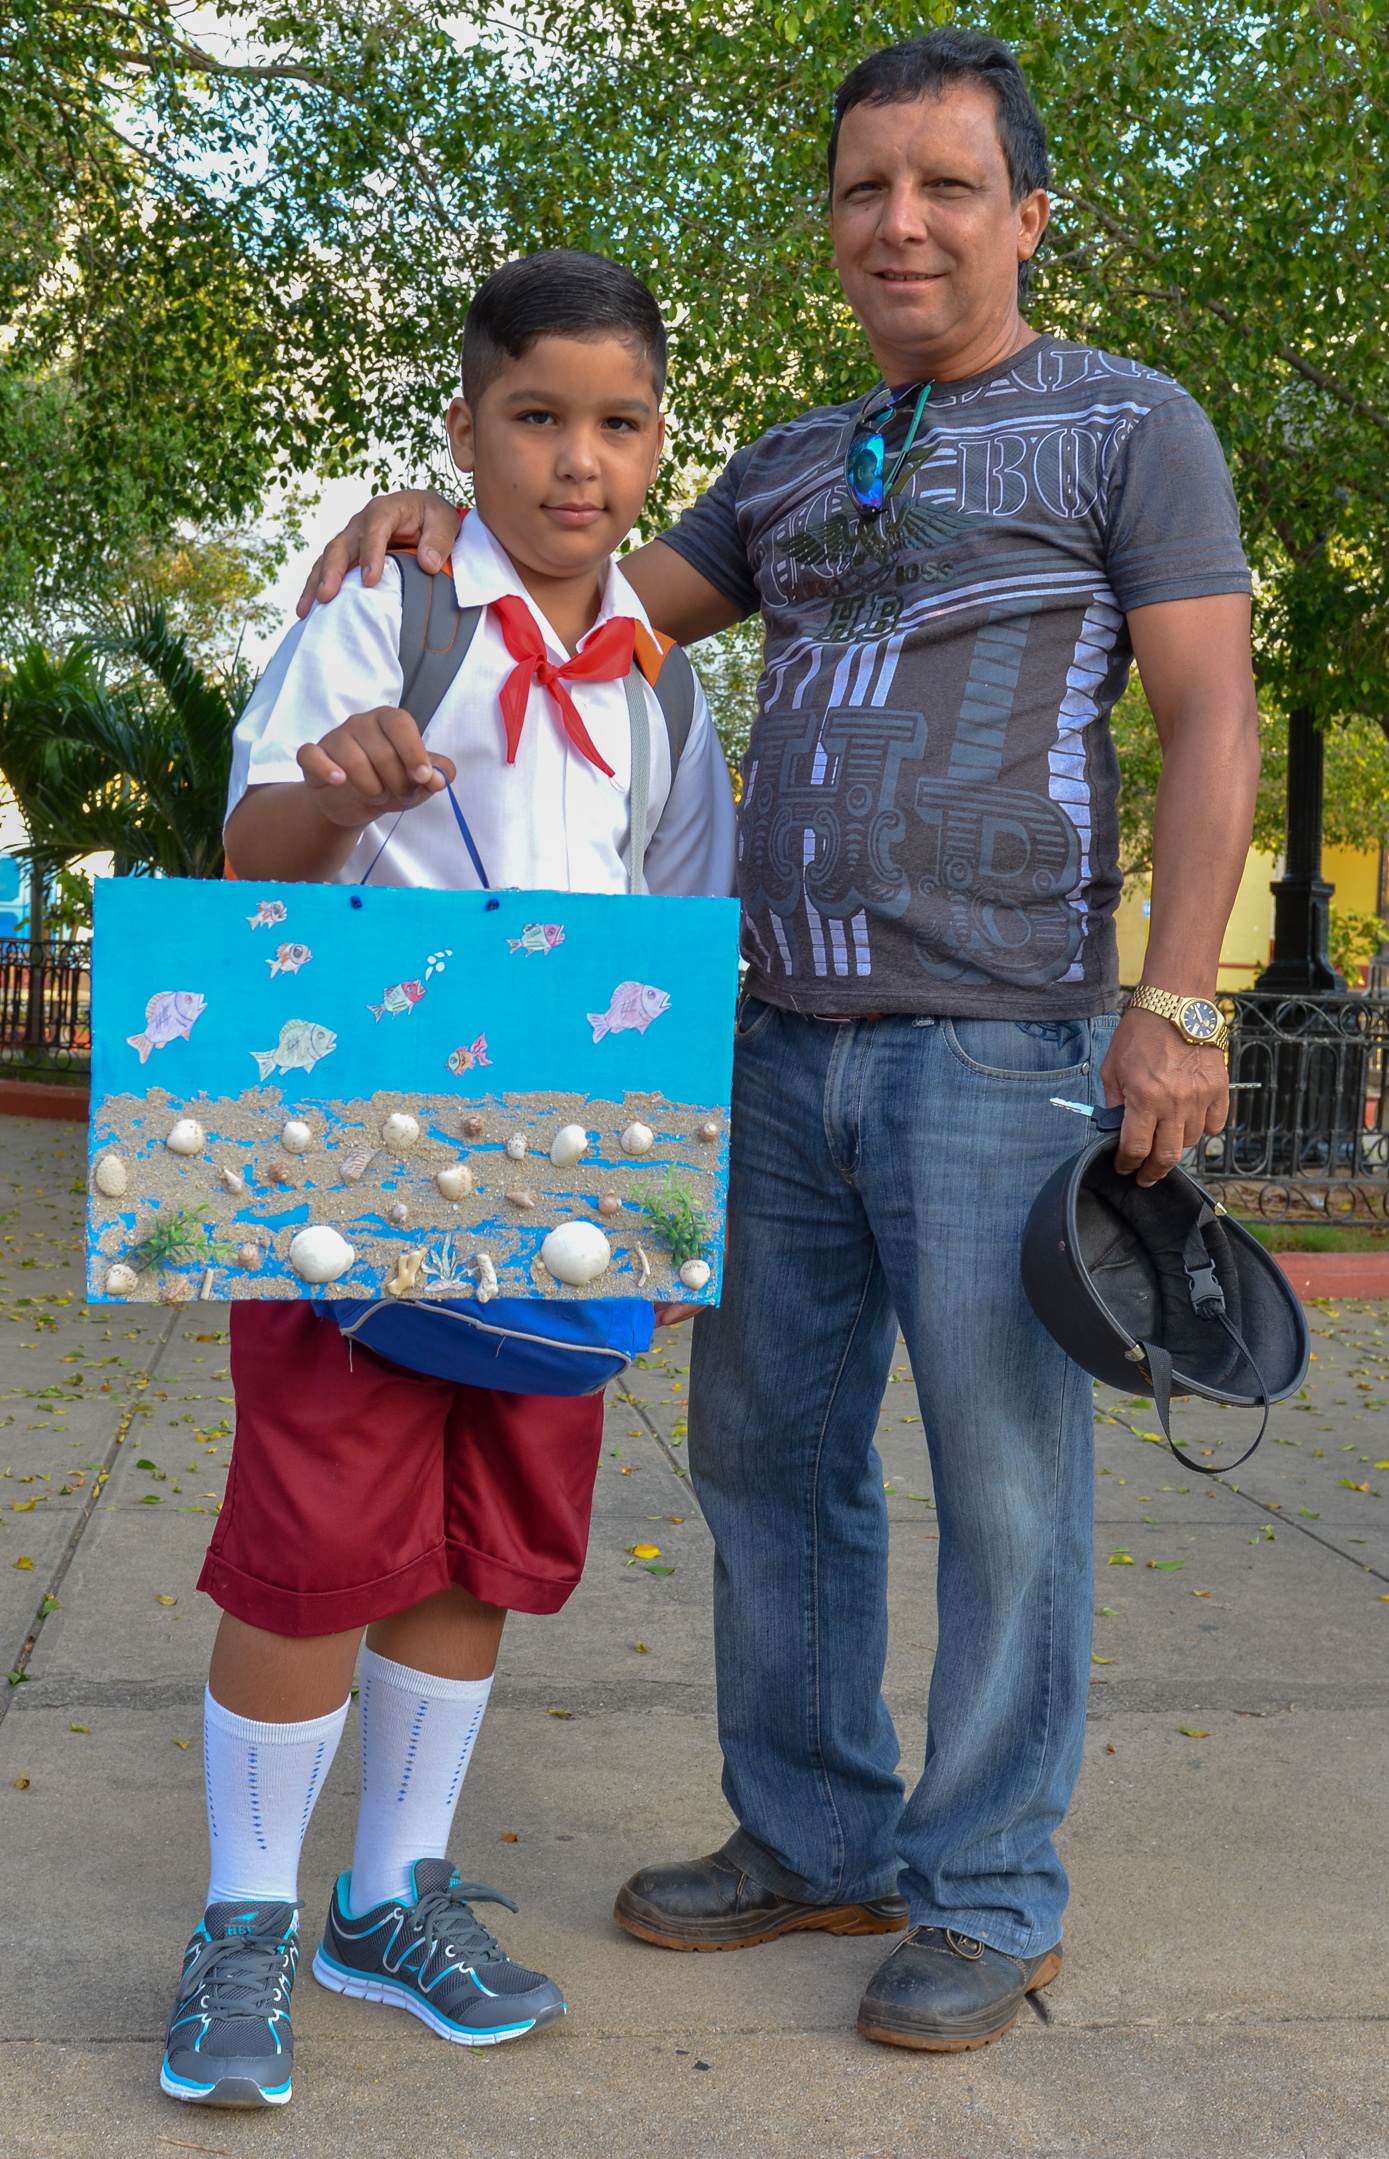 School Boy and Dad - Trinidad Cuba 2015